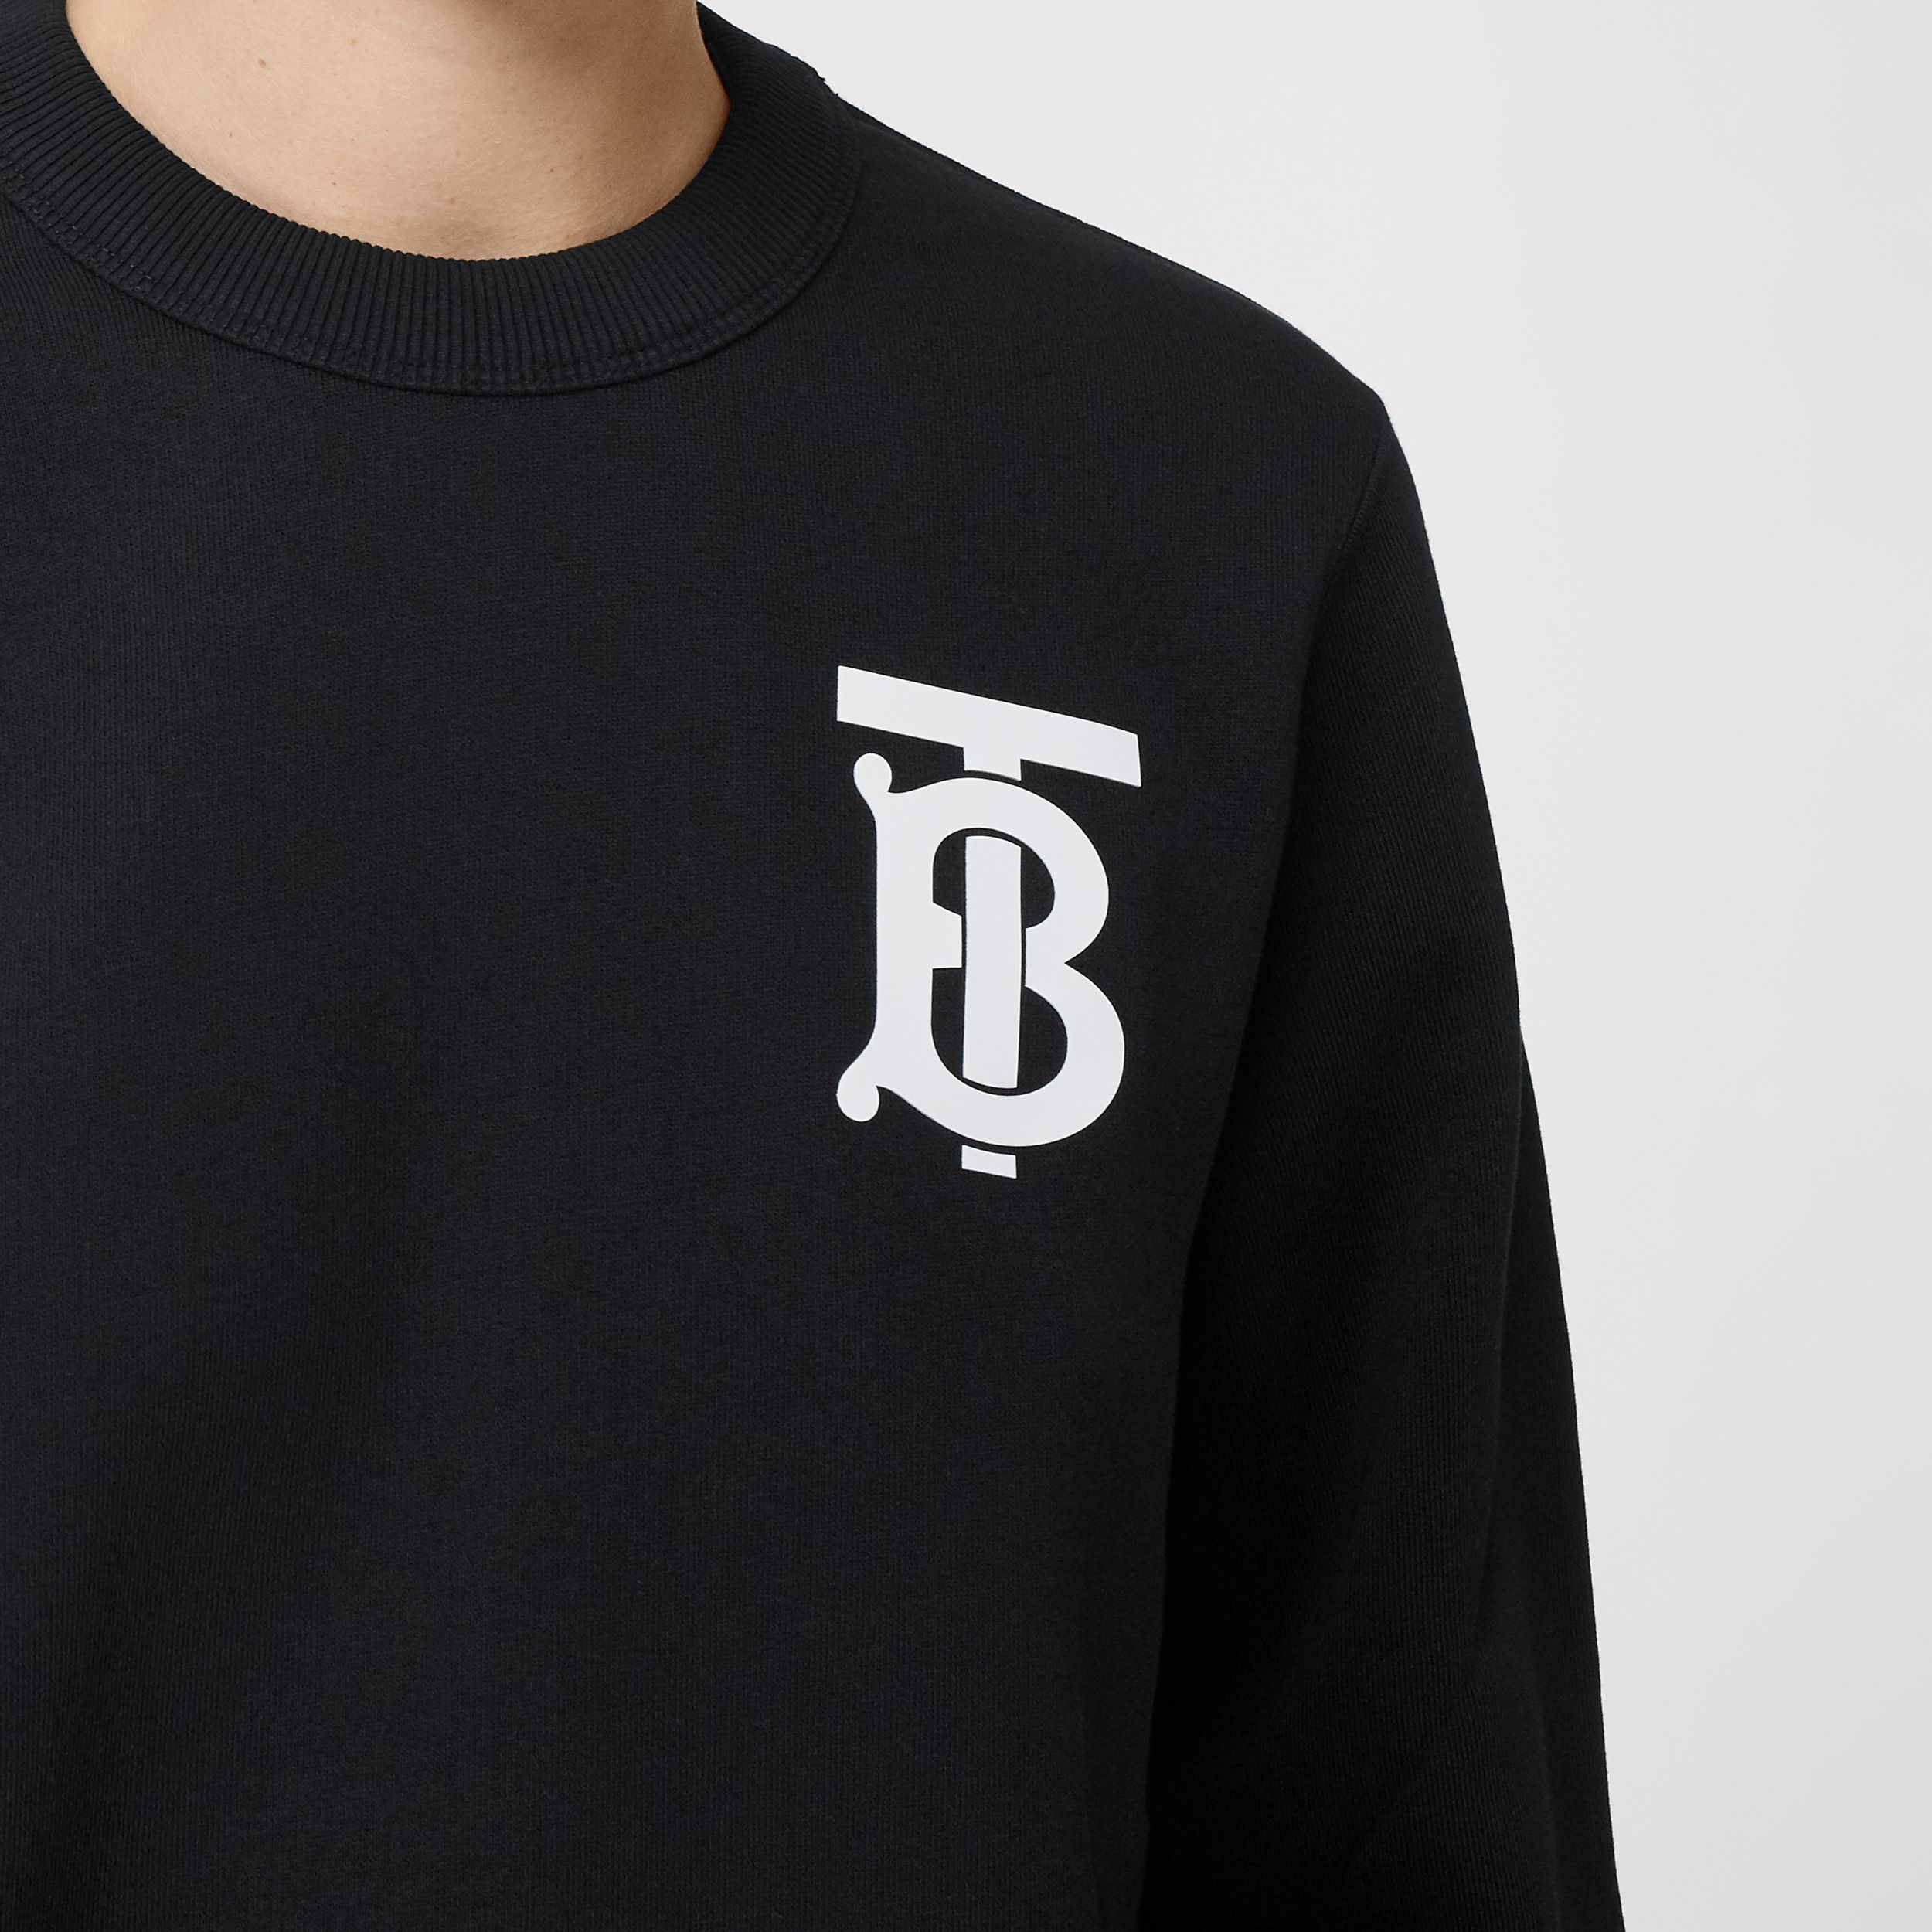 Monogram Motif Cotton Sweatshirt in Black - Women | Burberry - 2